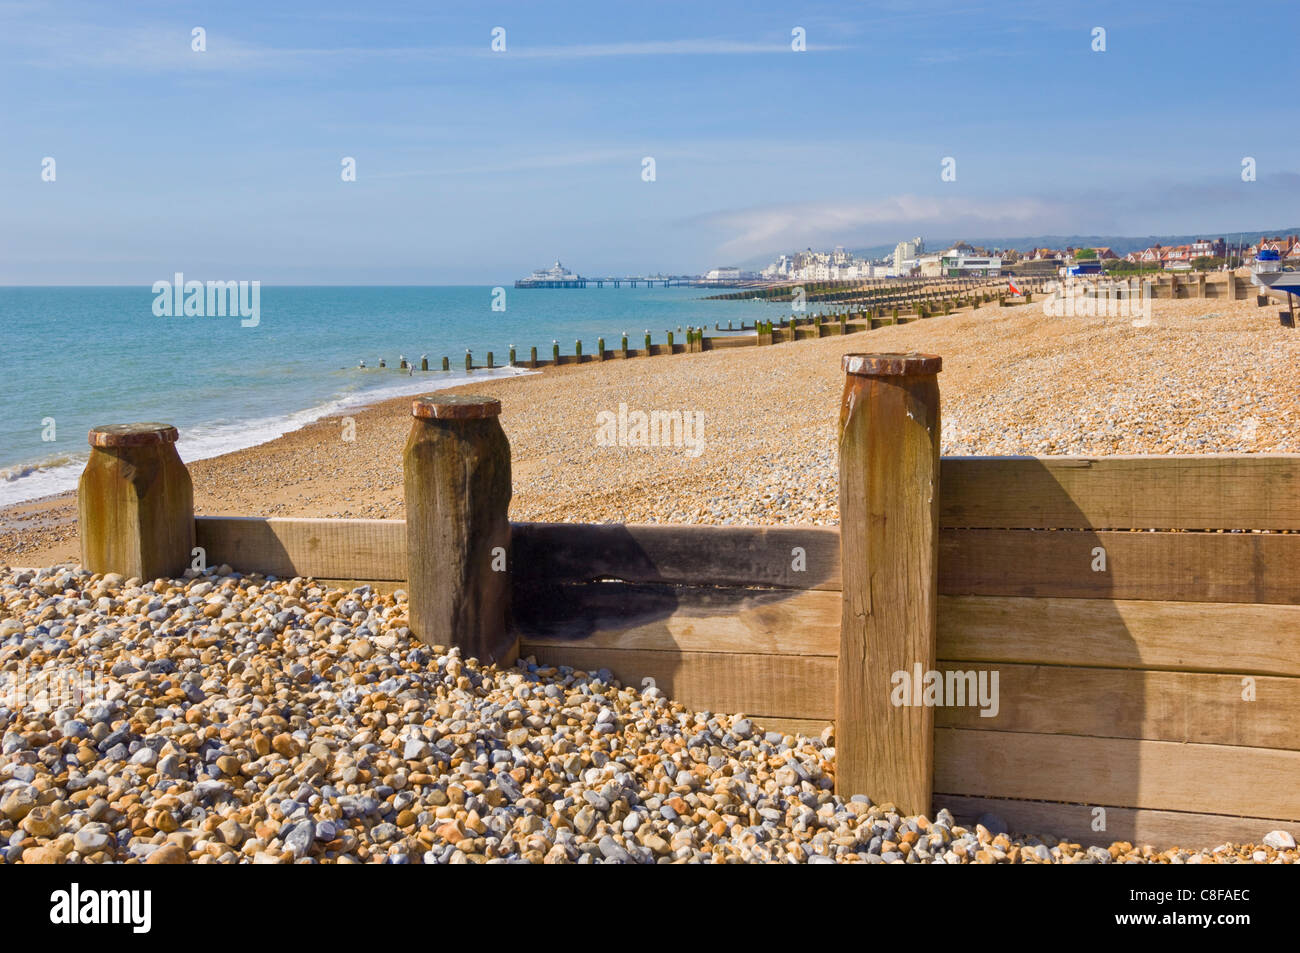 Pebble beach and groynes, Eastbourne Pier in the distance, Eastbourne, East Sussex, England, United Kingdom - Stock Image